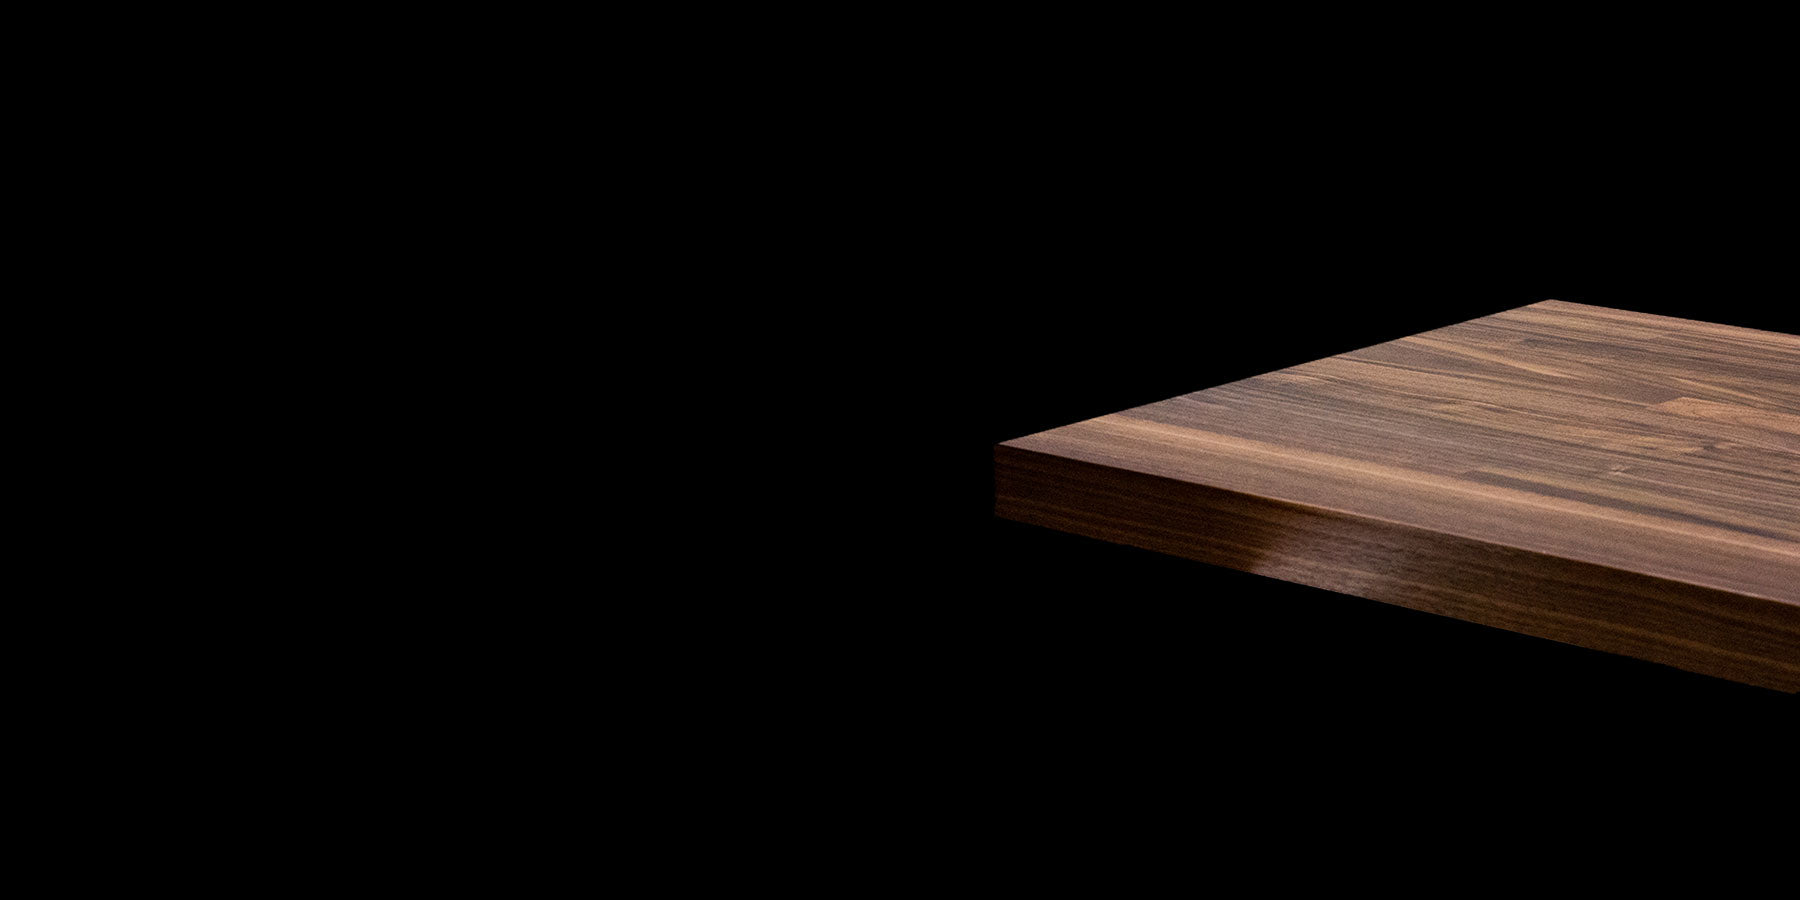 Walnut Butcher Block by RealCraft on a Black Background